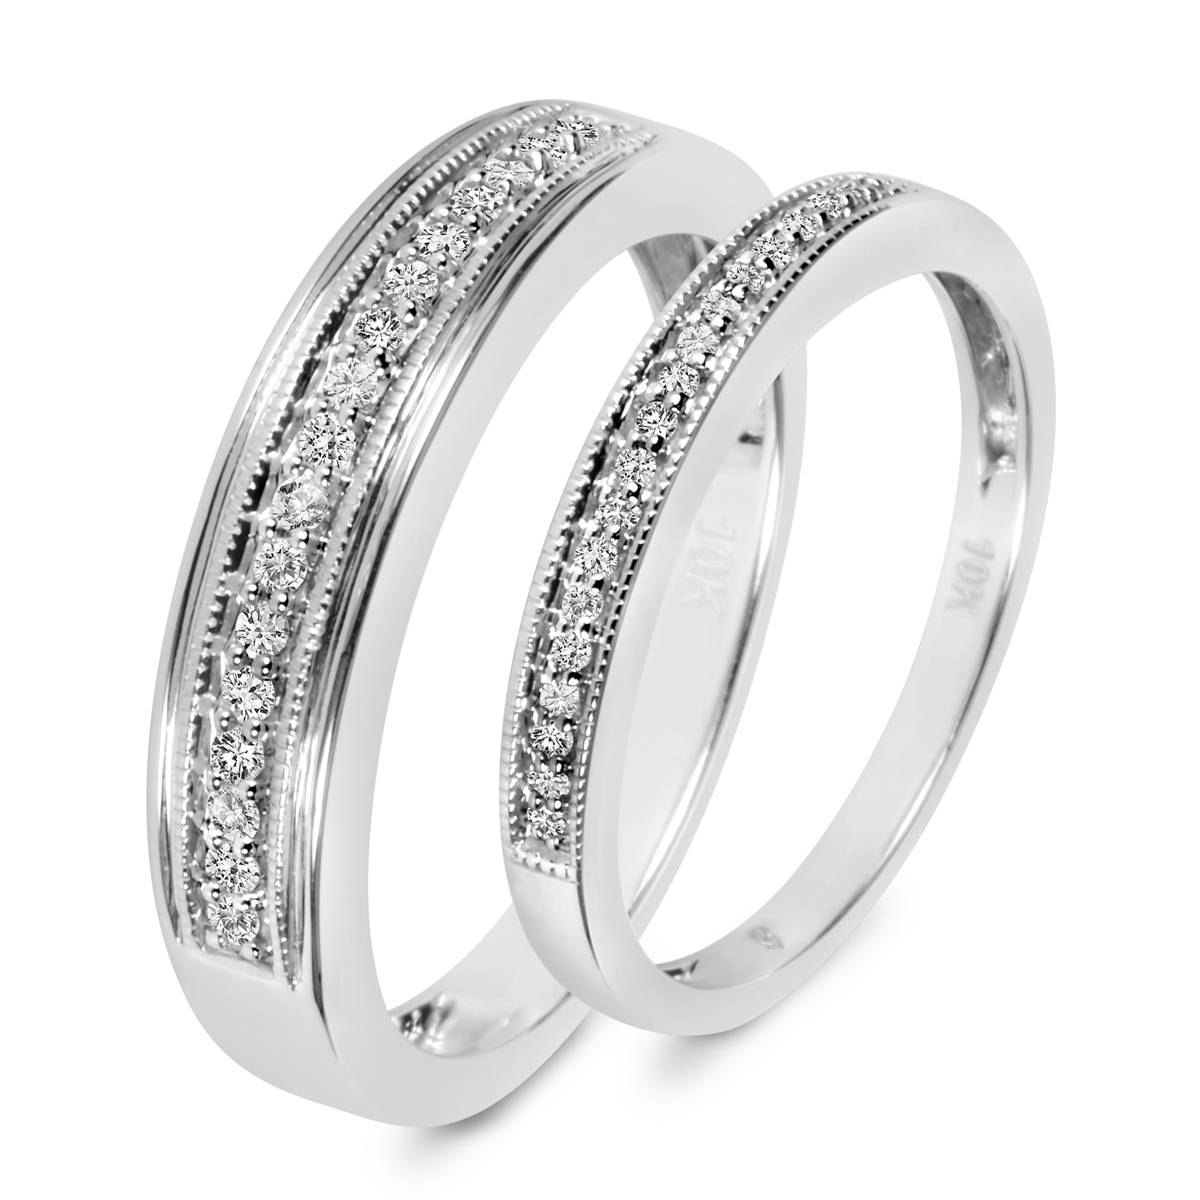 1/4 Ct. T.w. Diamond His And Hers Wedding Band Set 10K White Gold Pertaining To His And Her Wedding Bands Sets (Gallery 12 of 15)